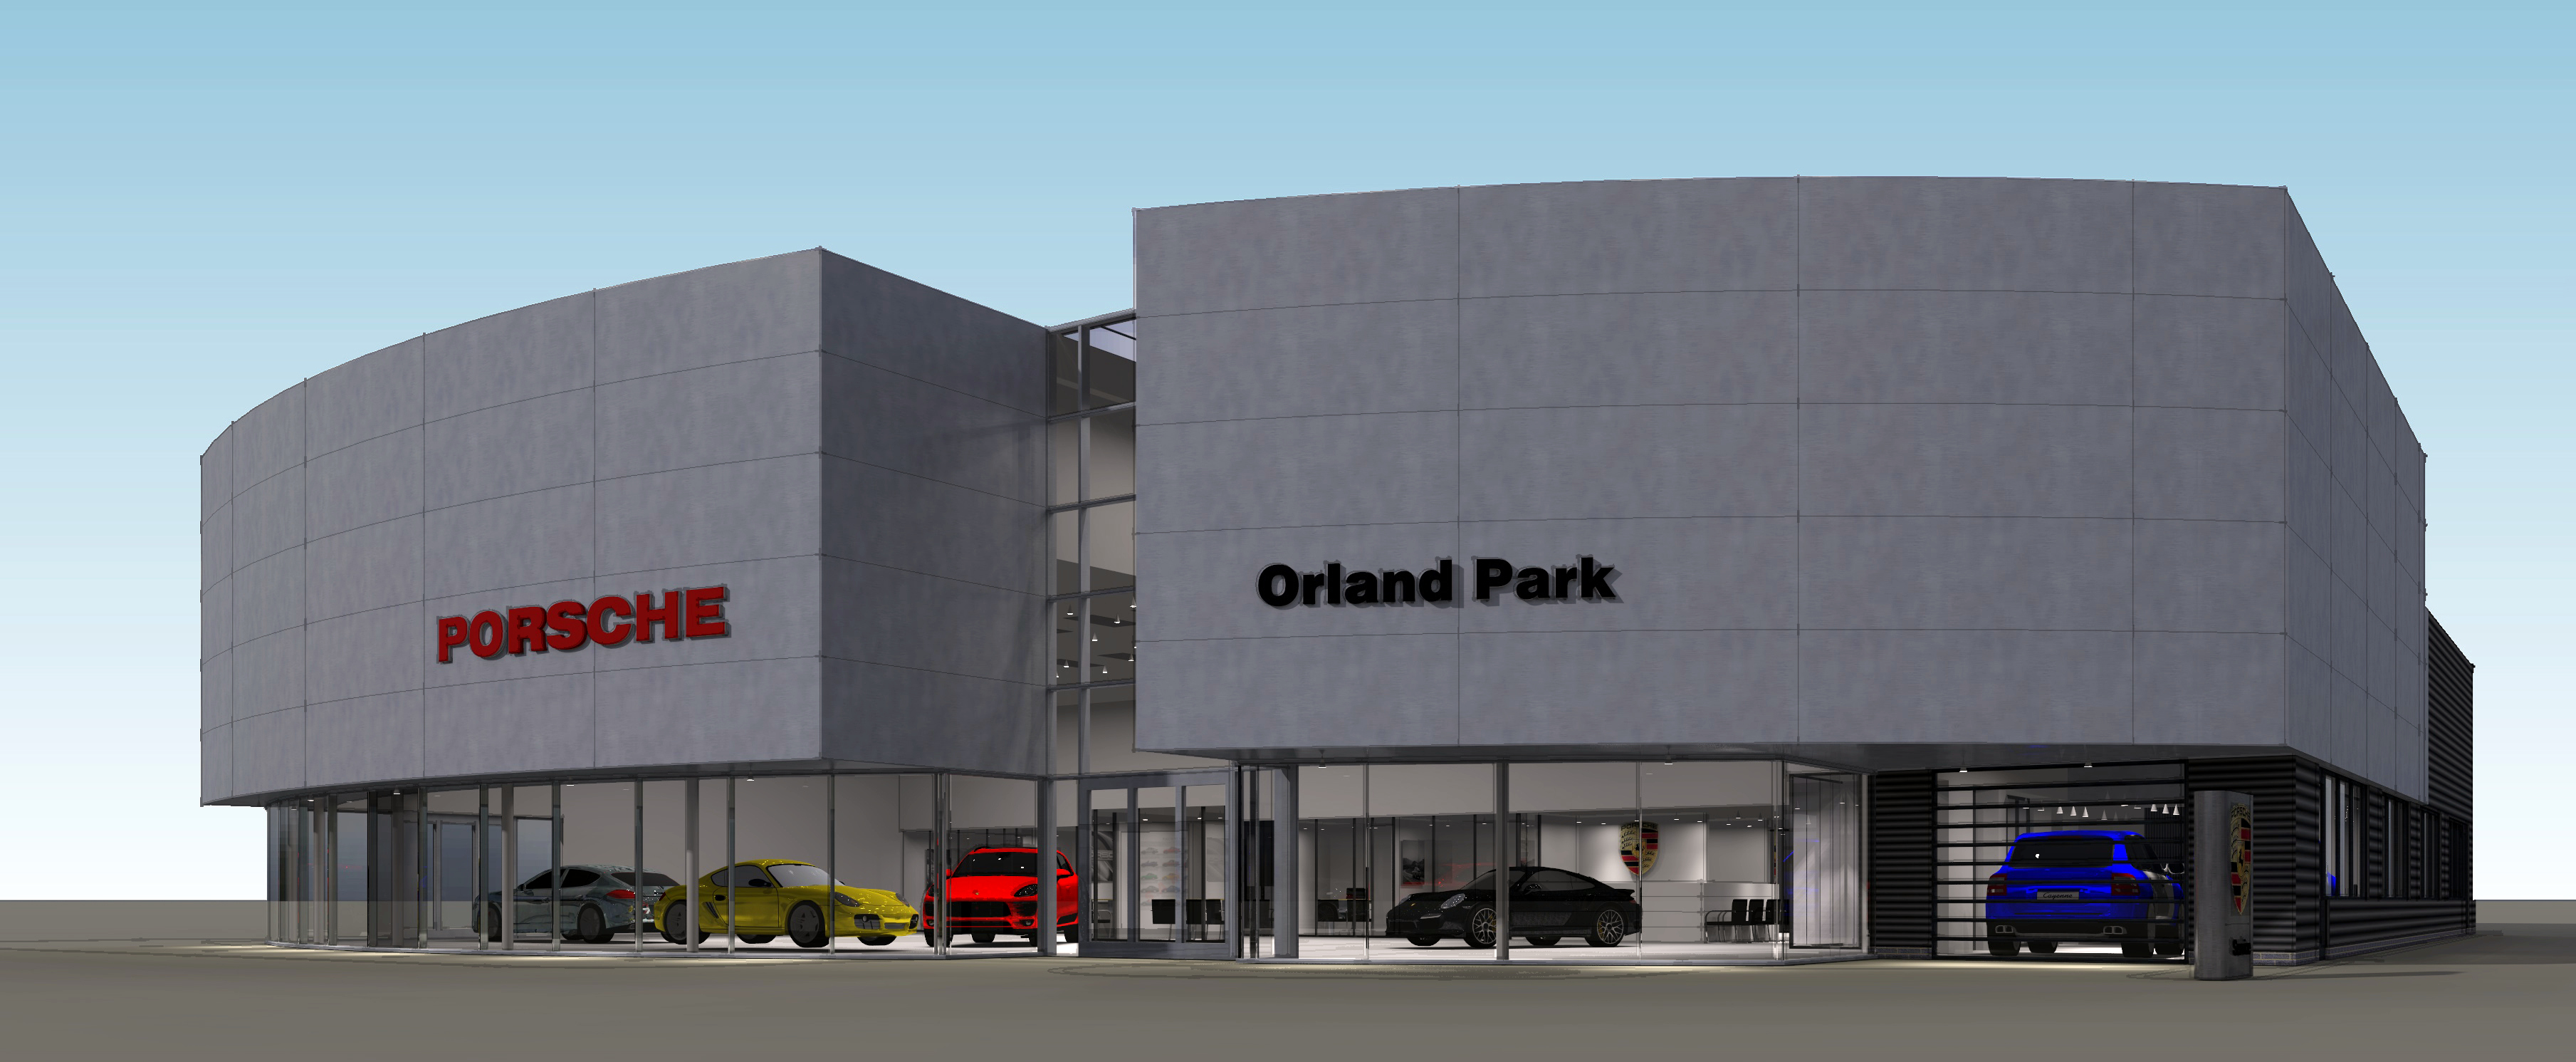 brand new building coming soon for porsche orland park